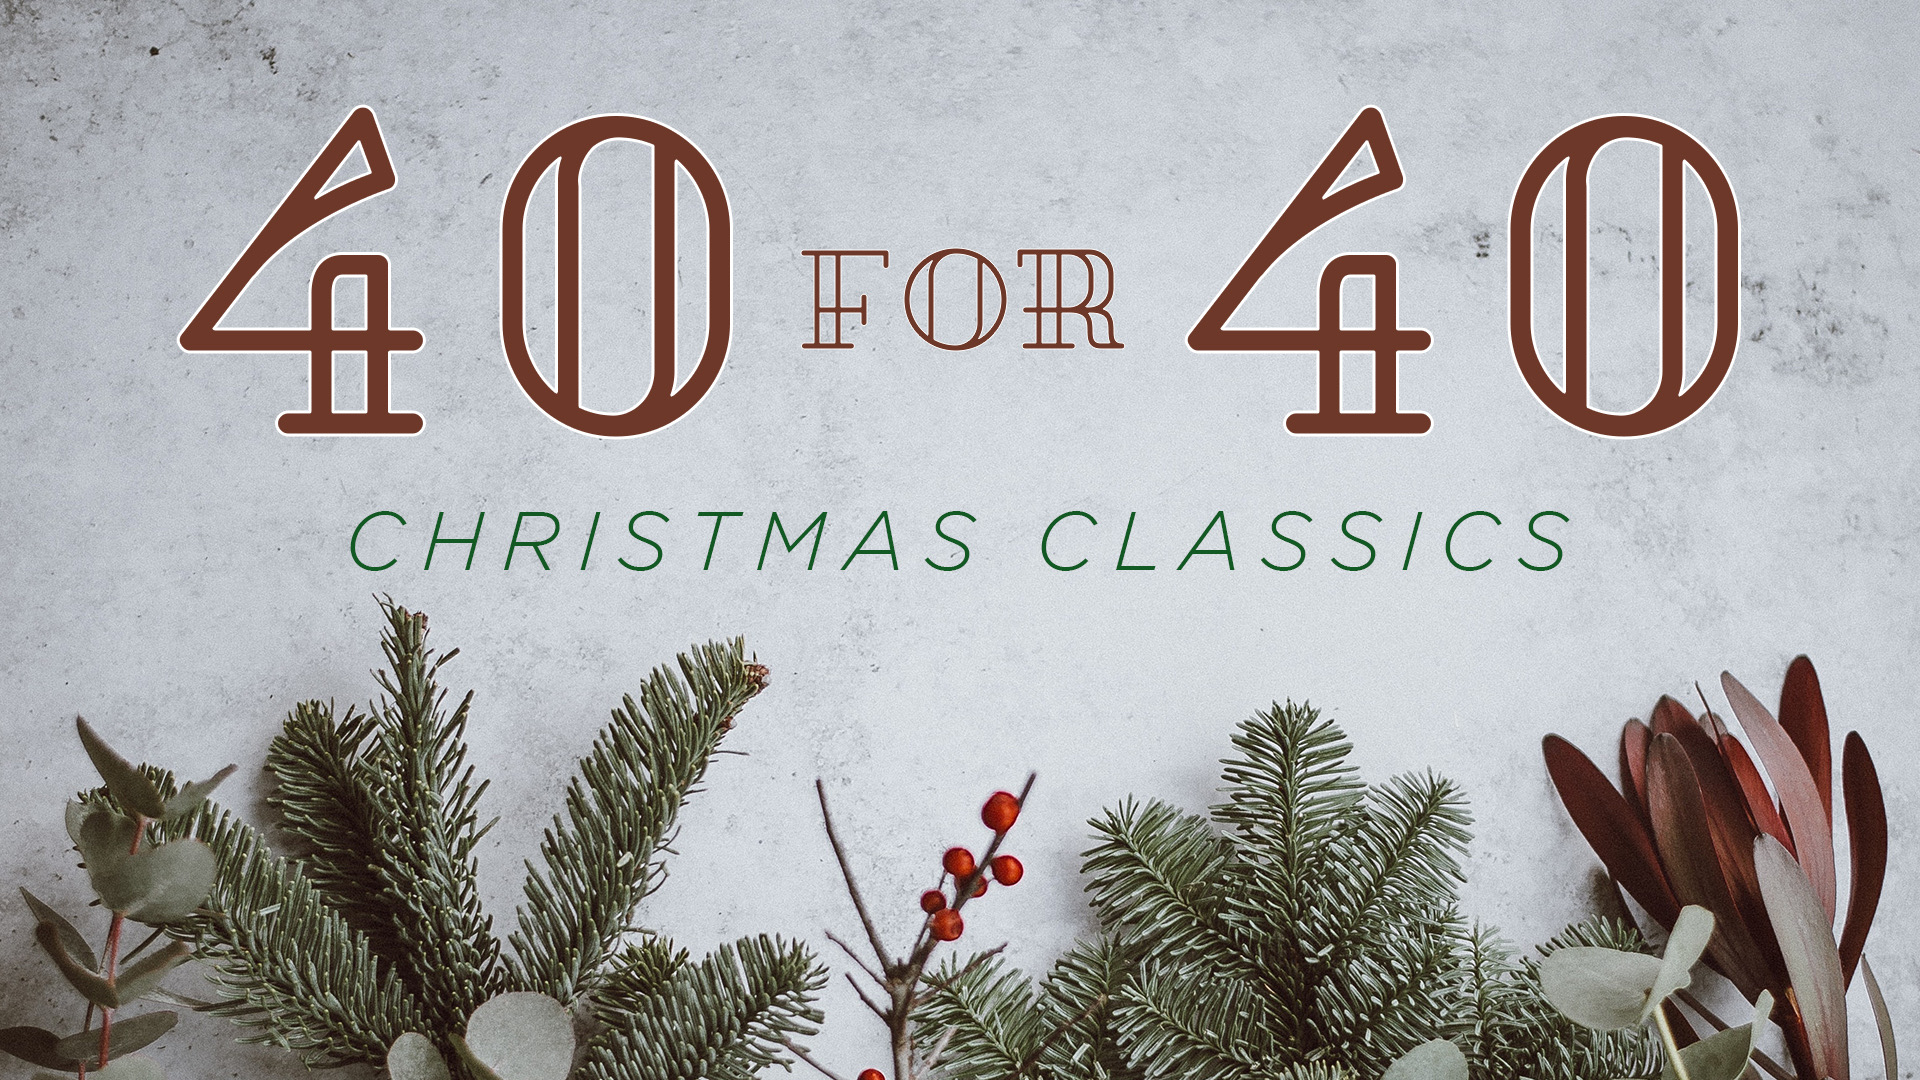 40 for 40 Christmas Classics 16x9